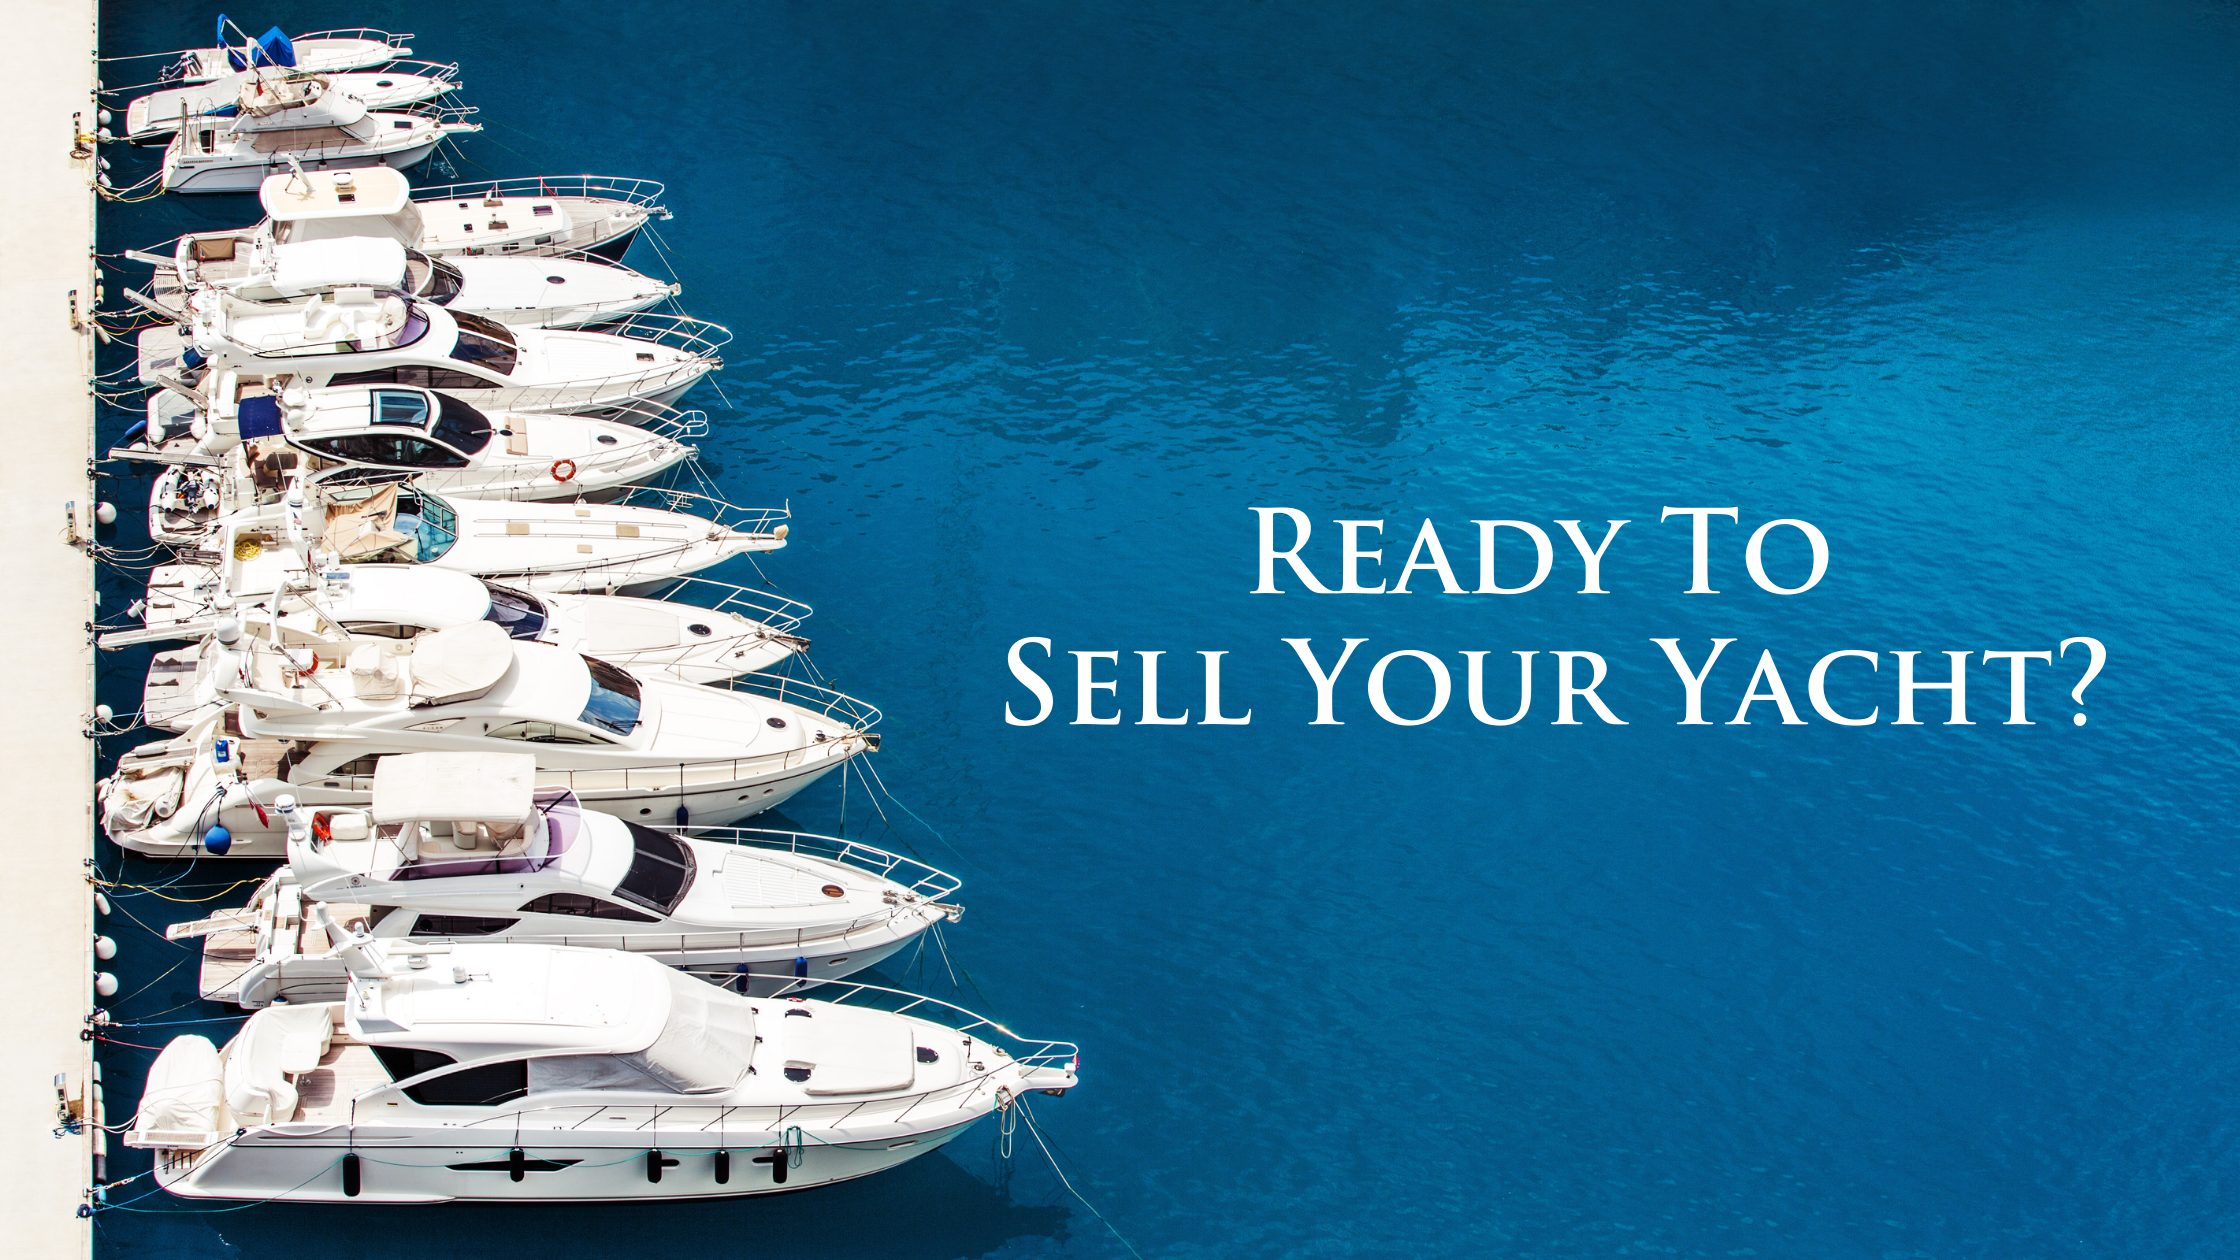 A Full-Service Yacht Brokerage Firm Offers Sellers Many Advantages